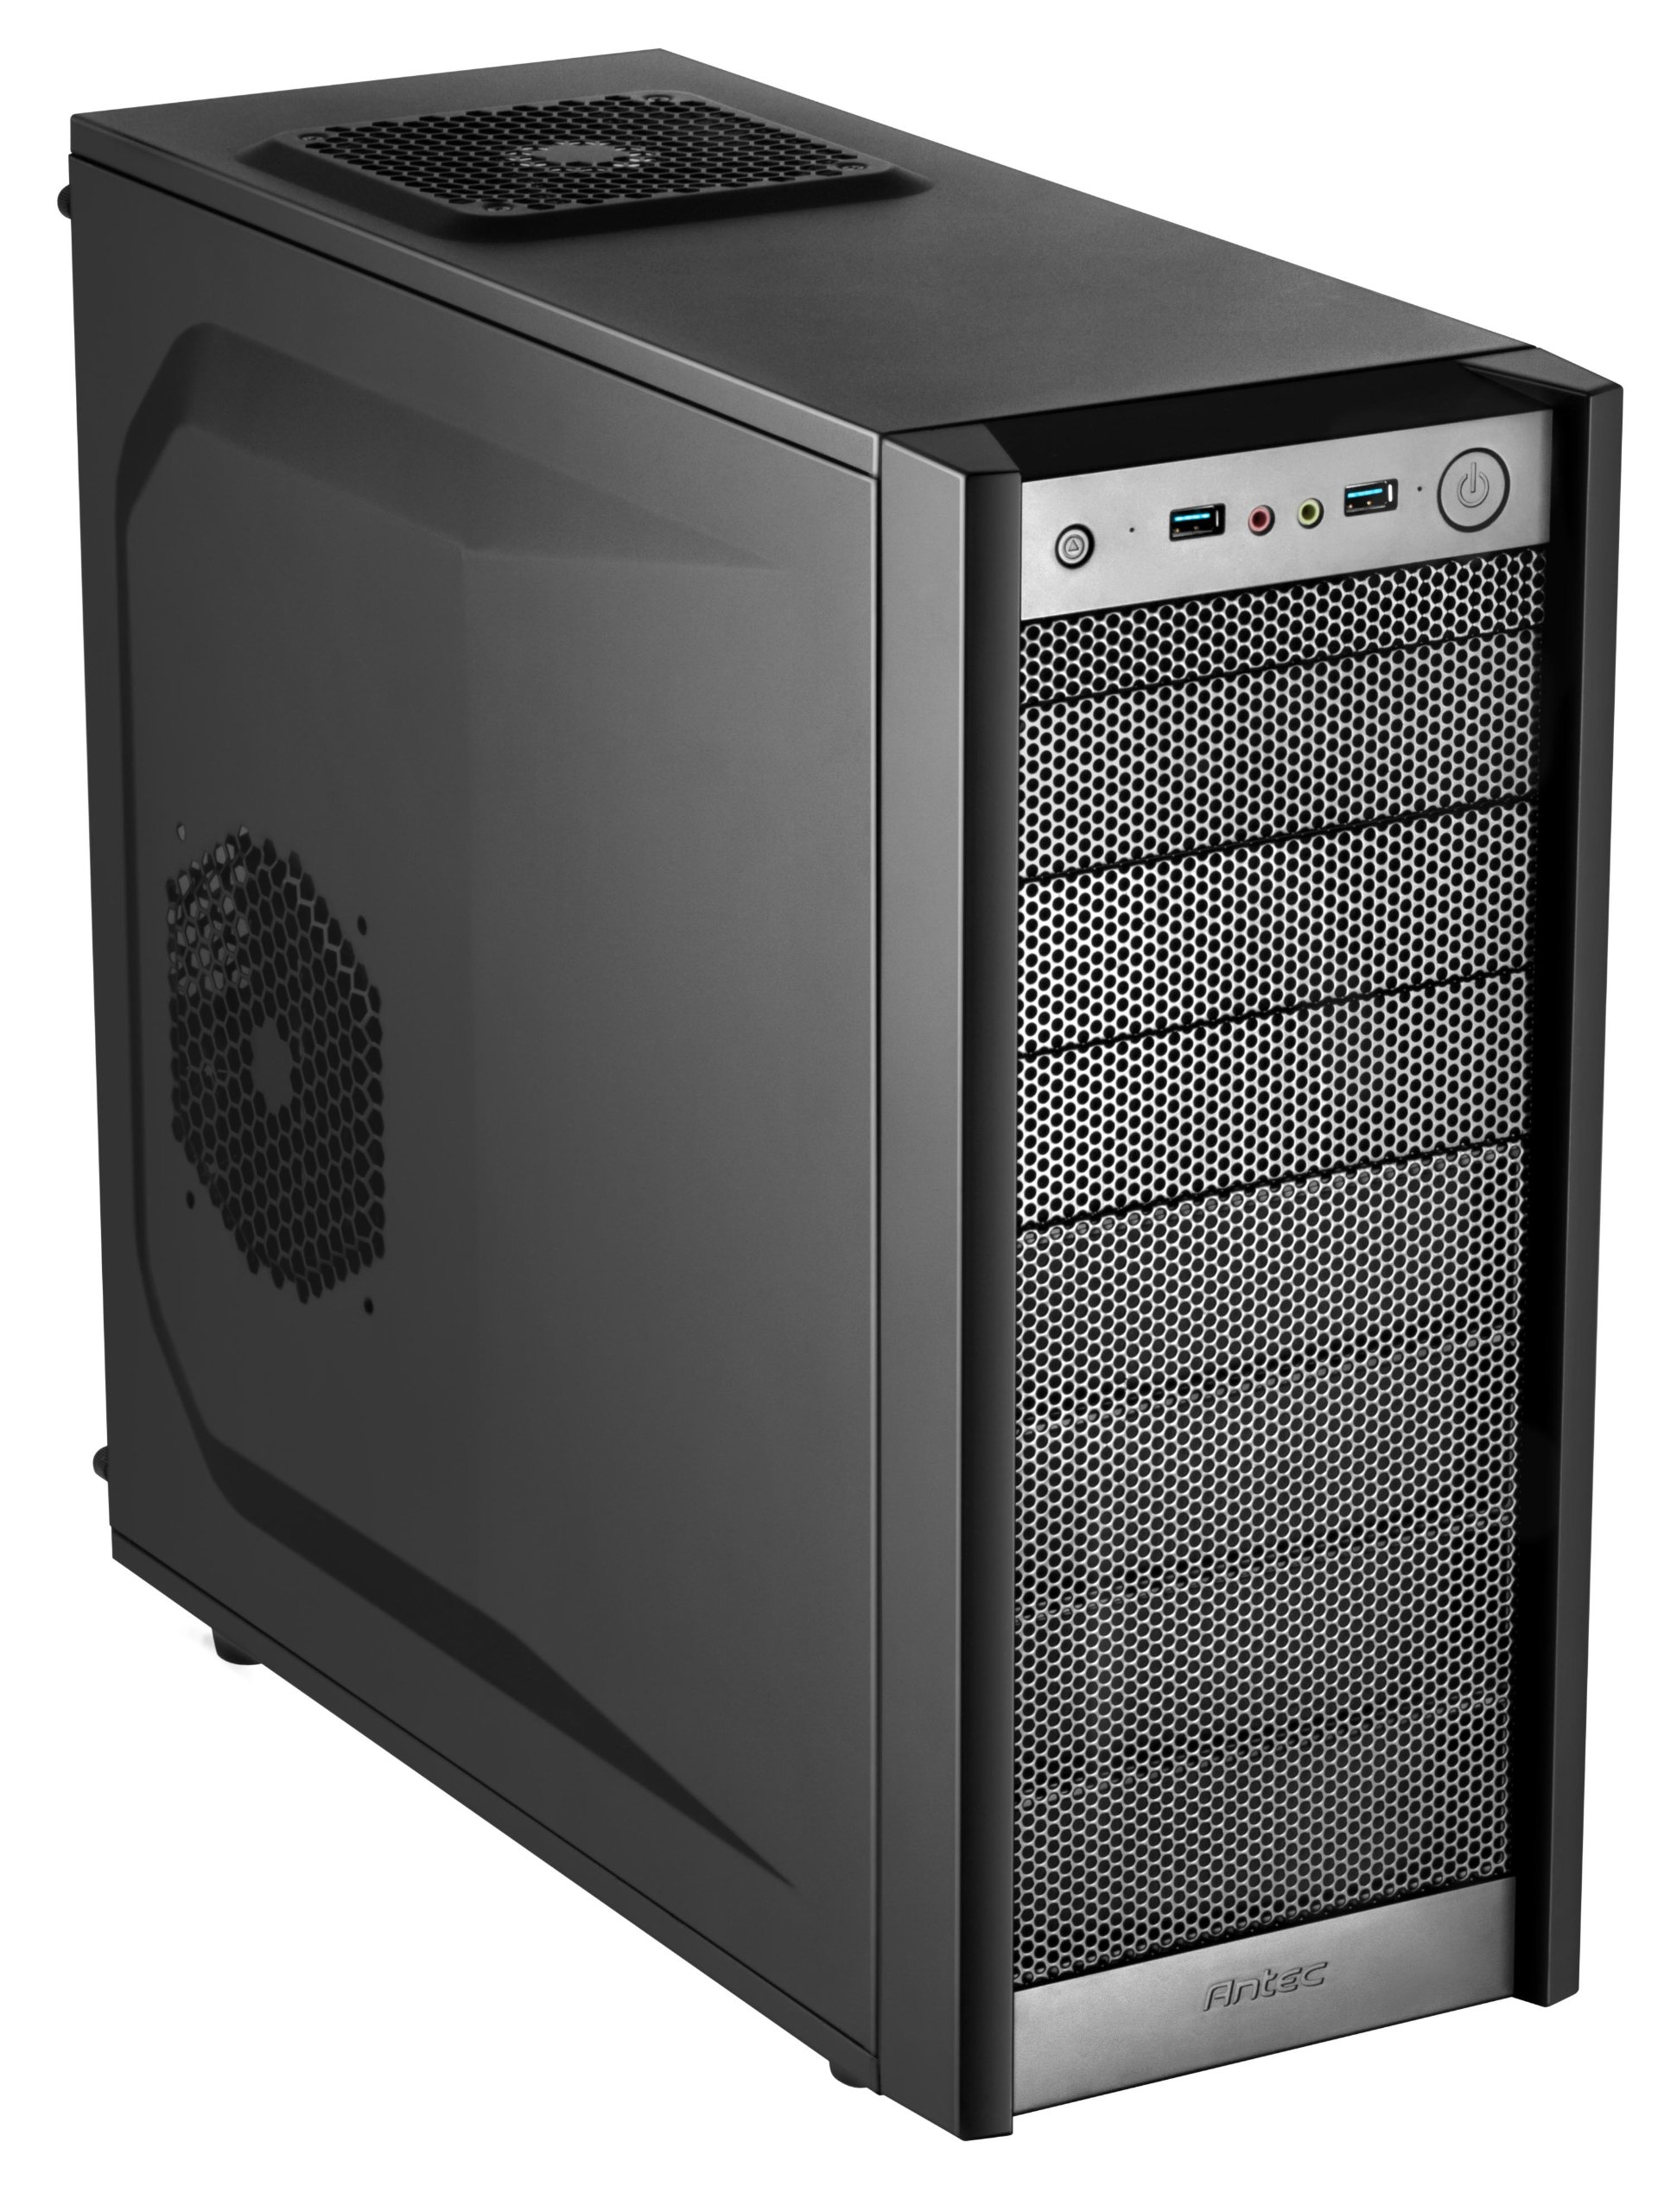 Antec Gaming Series ONE Mid-Tower PC/Gaming Computer Case with 10 Drive Bays, 120mm Fans x 2 Pre-Installed, 120/140mm Fan Mounts, USB 3.0 x 2, 7 PCI-E Slots, Max CPU Cutout for ATX, M-ATX and Mini-ITX by Antec